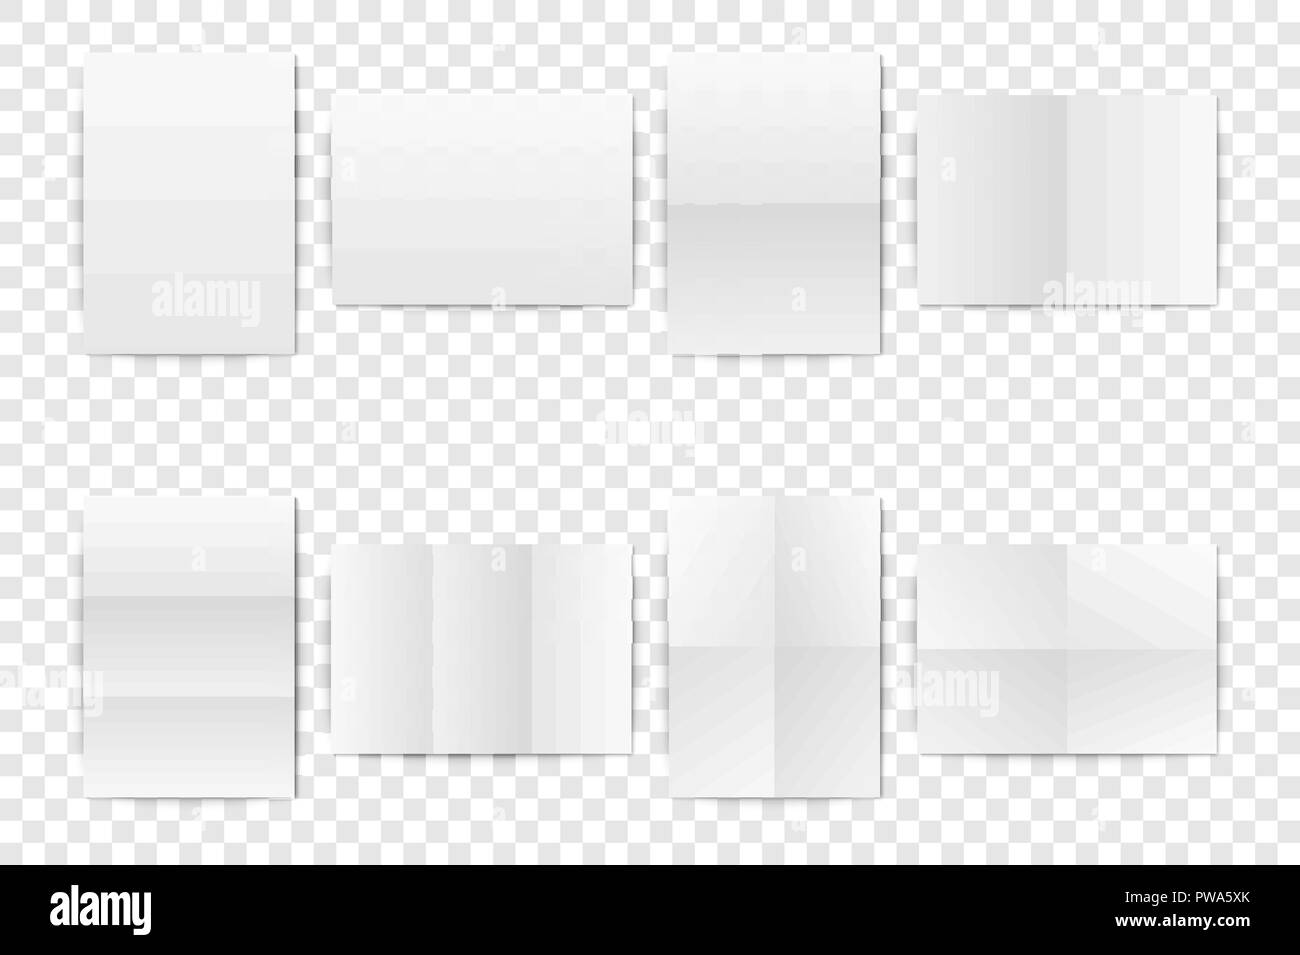 Vector Realistic White Blank Vertical A4 Folded Paper Sheet Poster